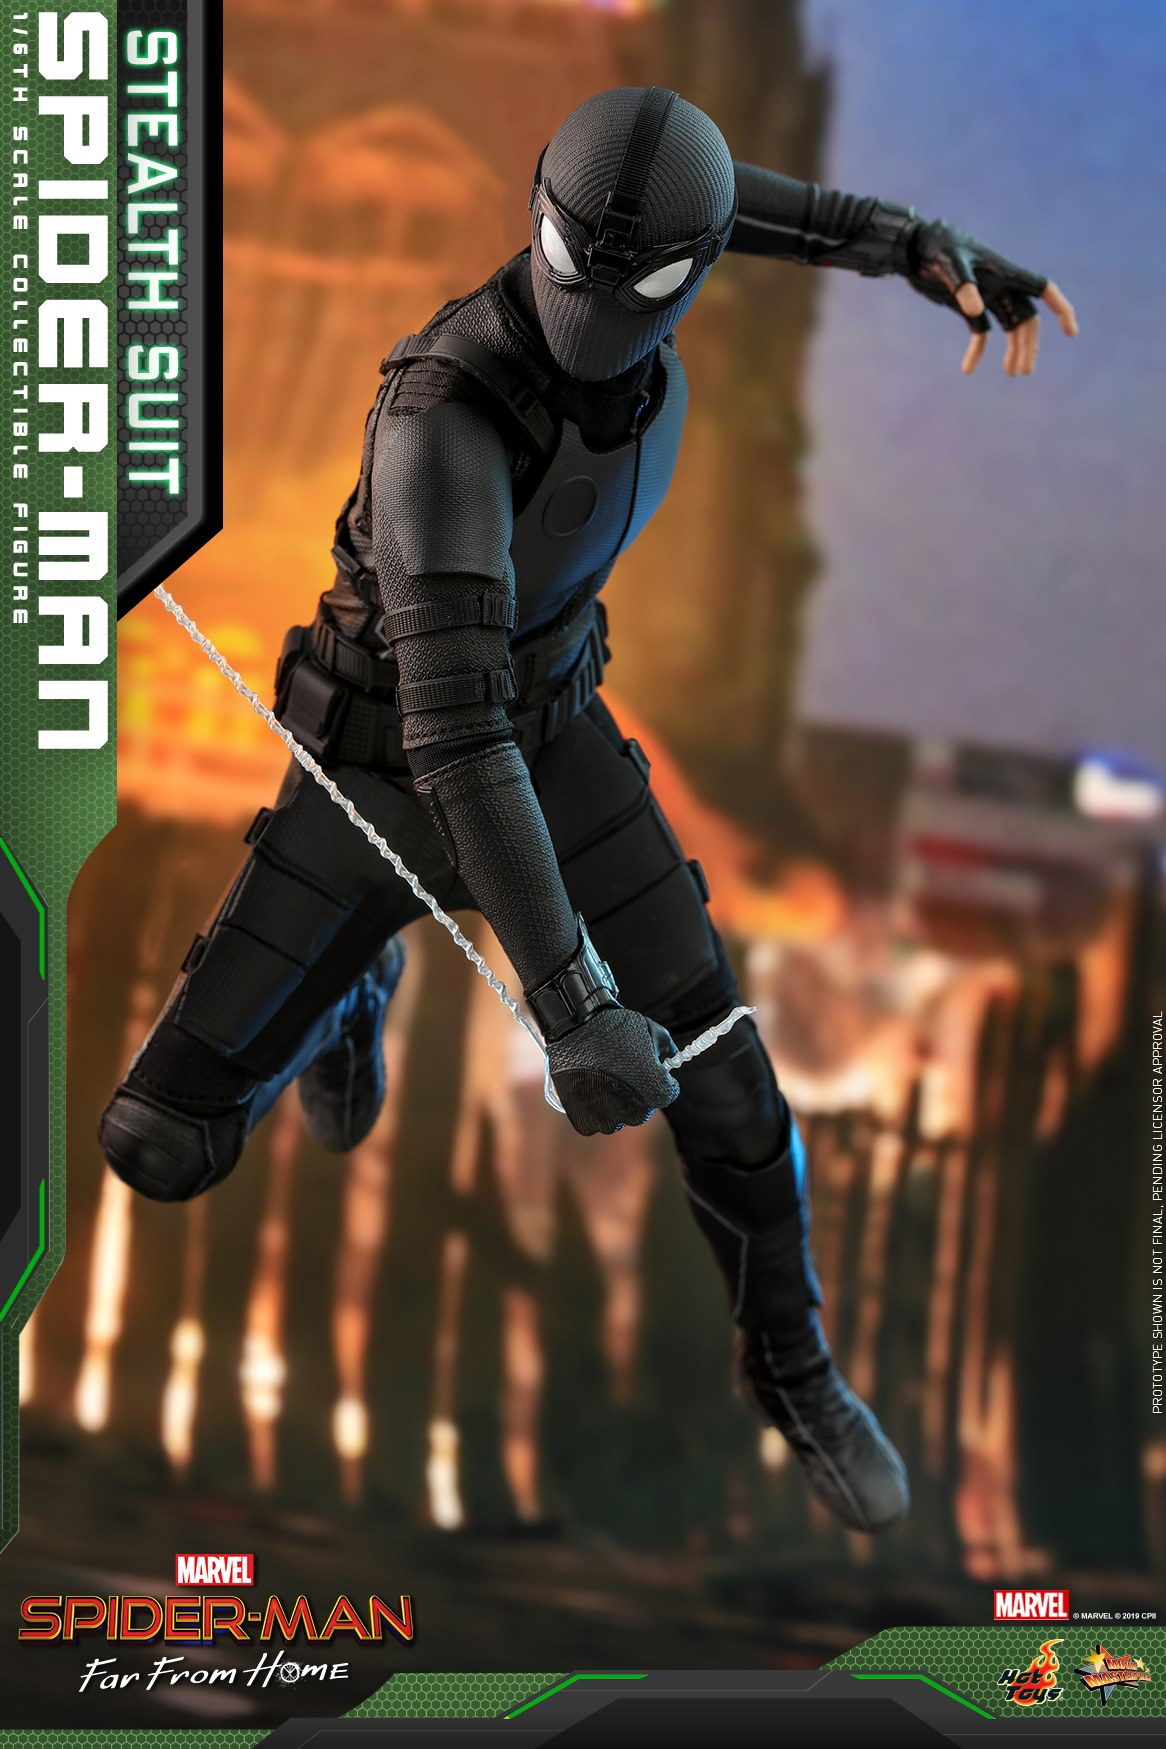 Link a Hot-Toys-Stealth-Suit-Spider-Man-006